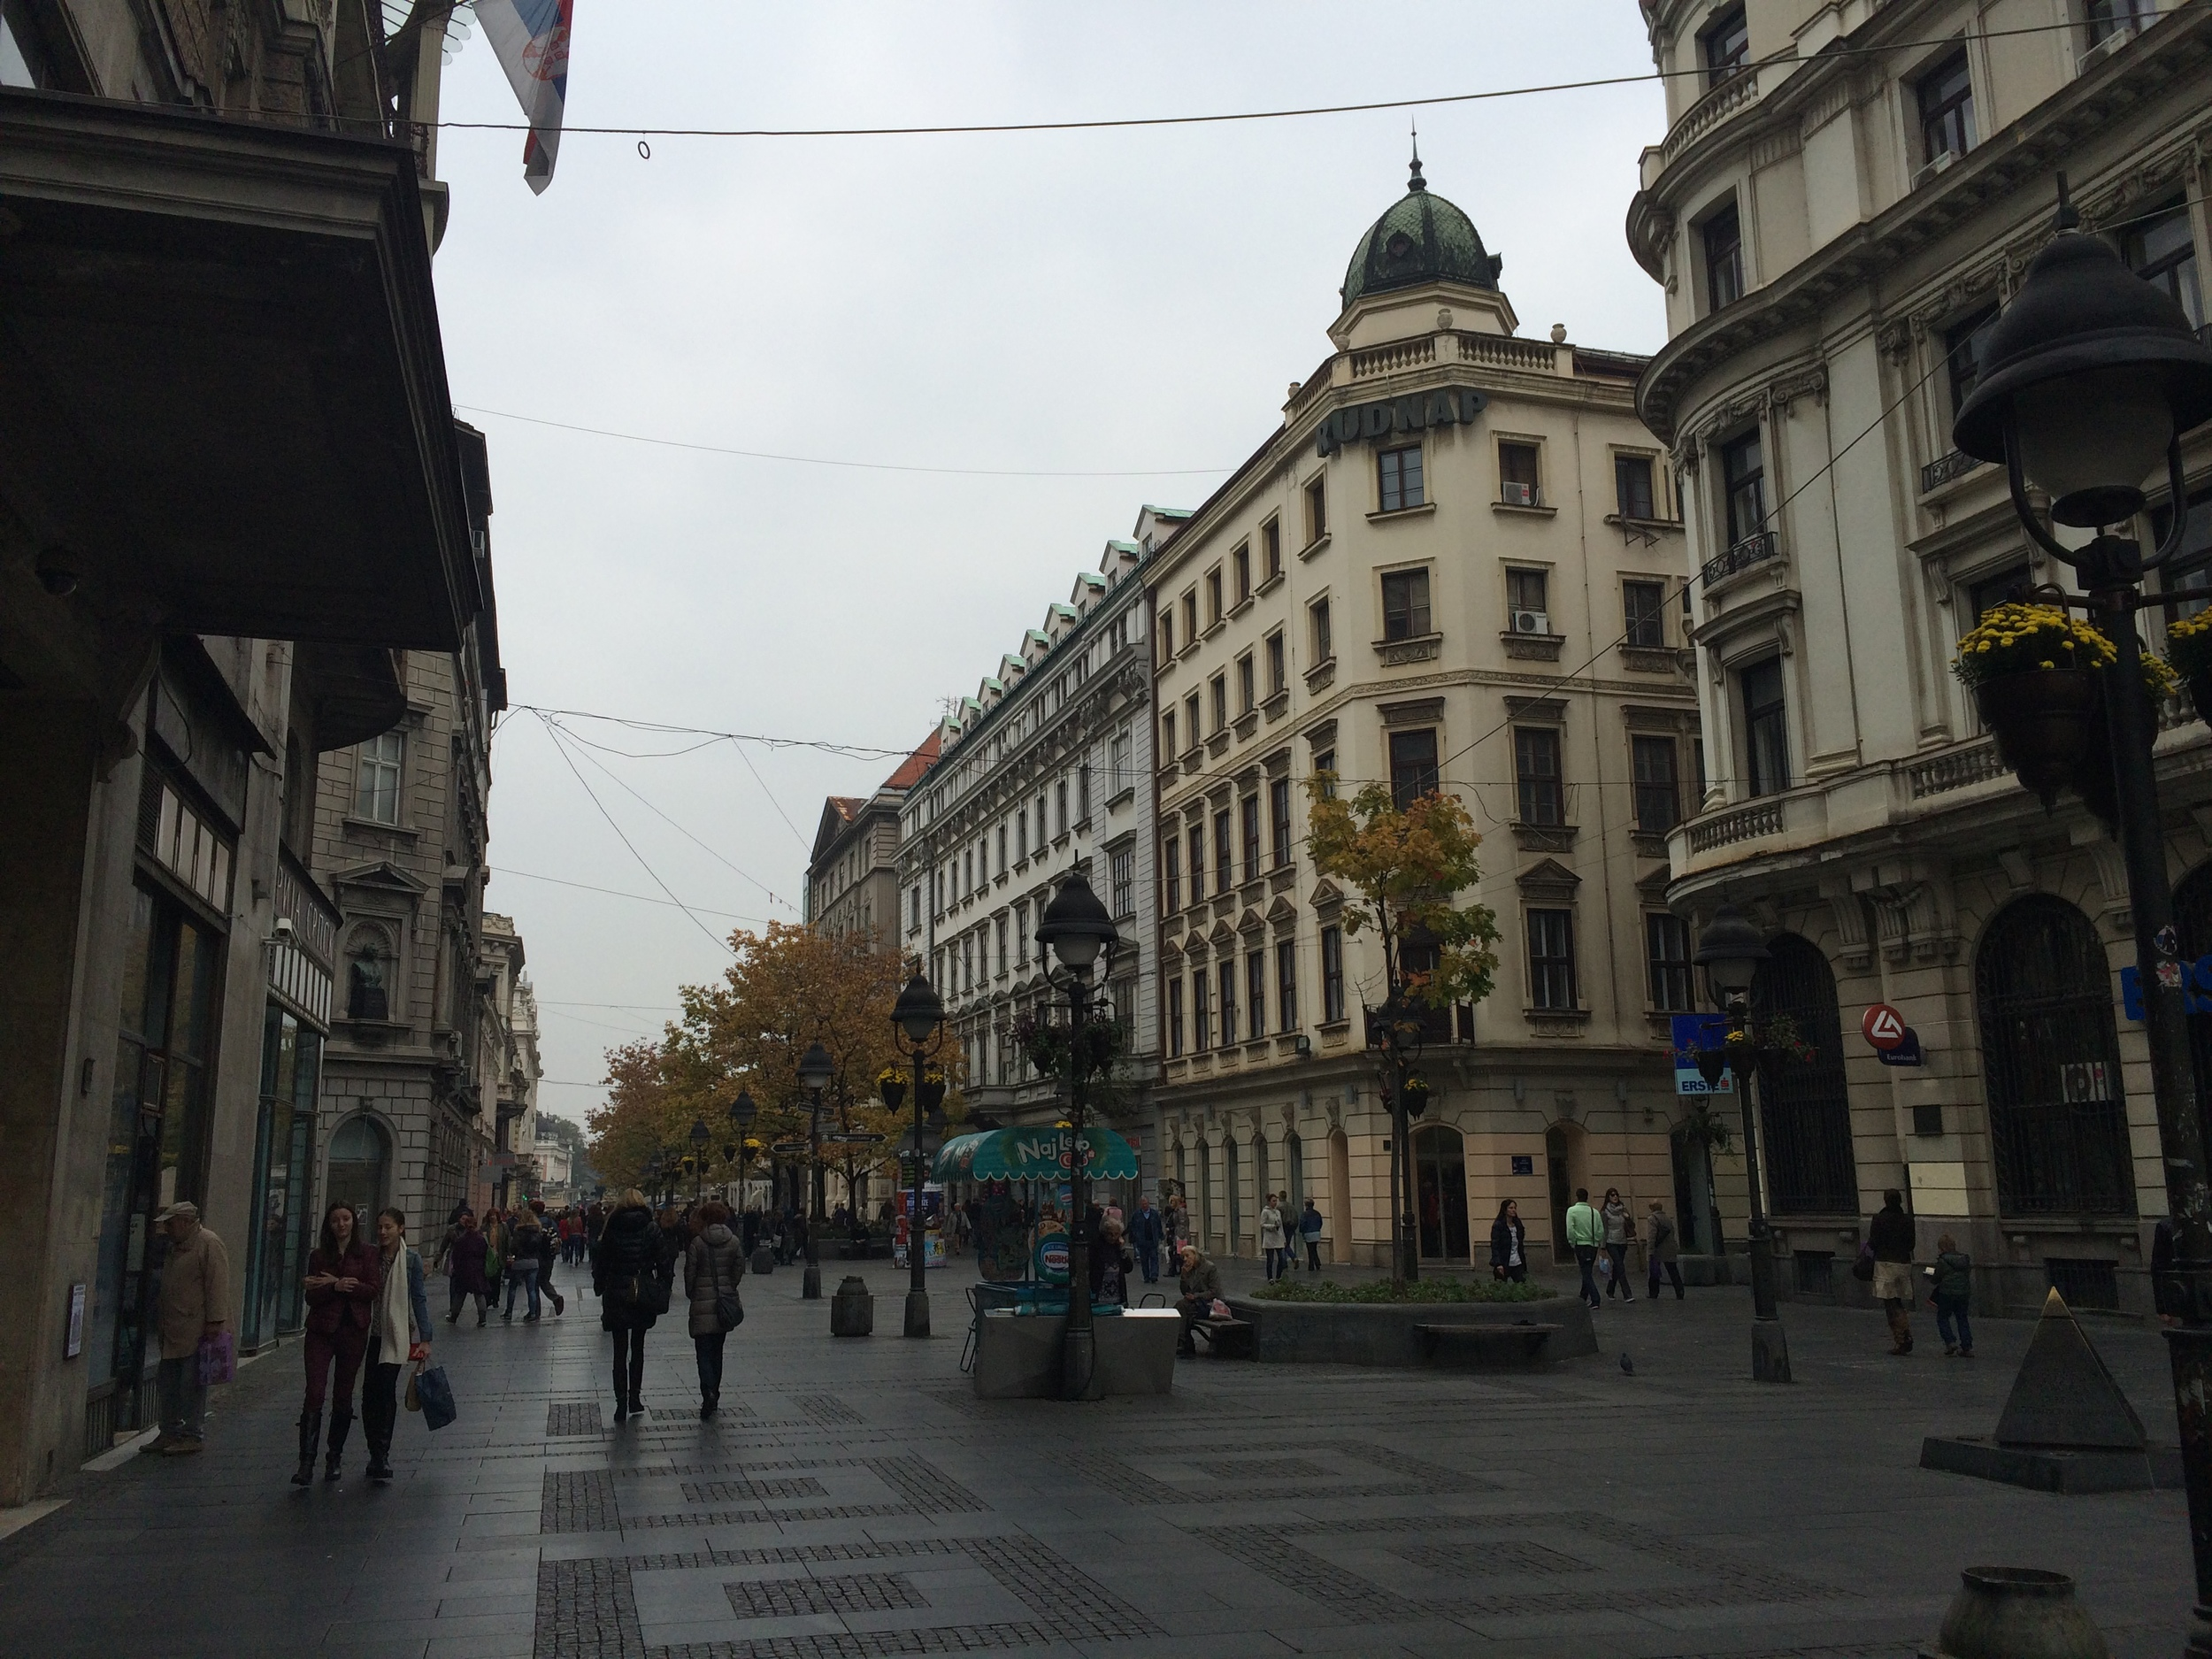 The main promenade,  Knez Mihailova,  in Belgrade.